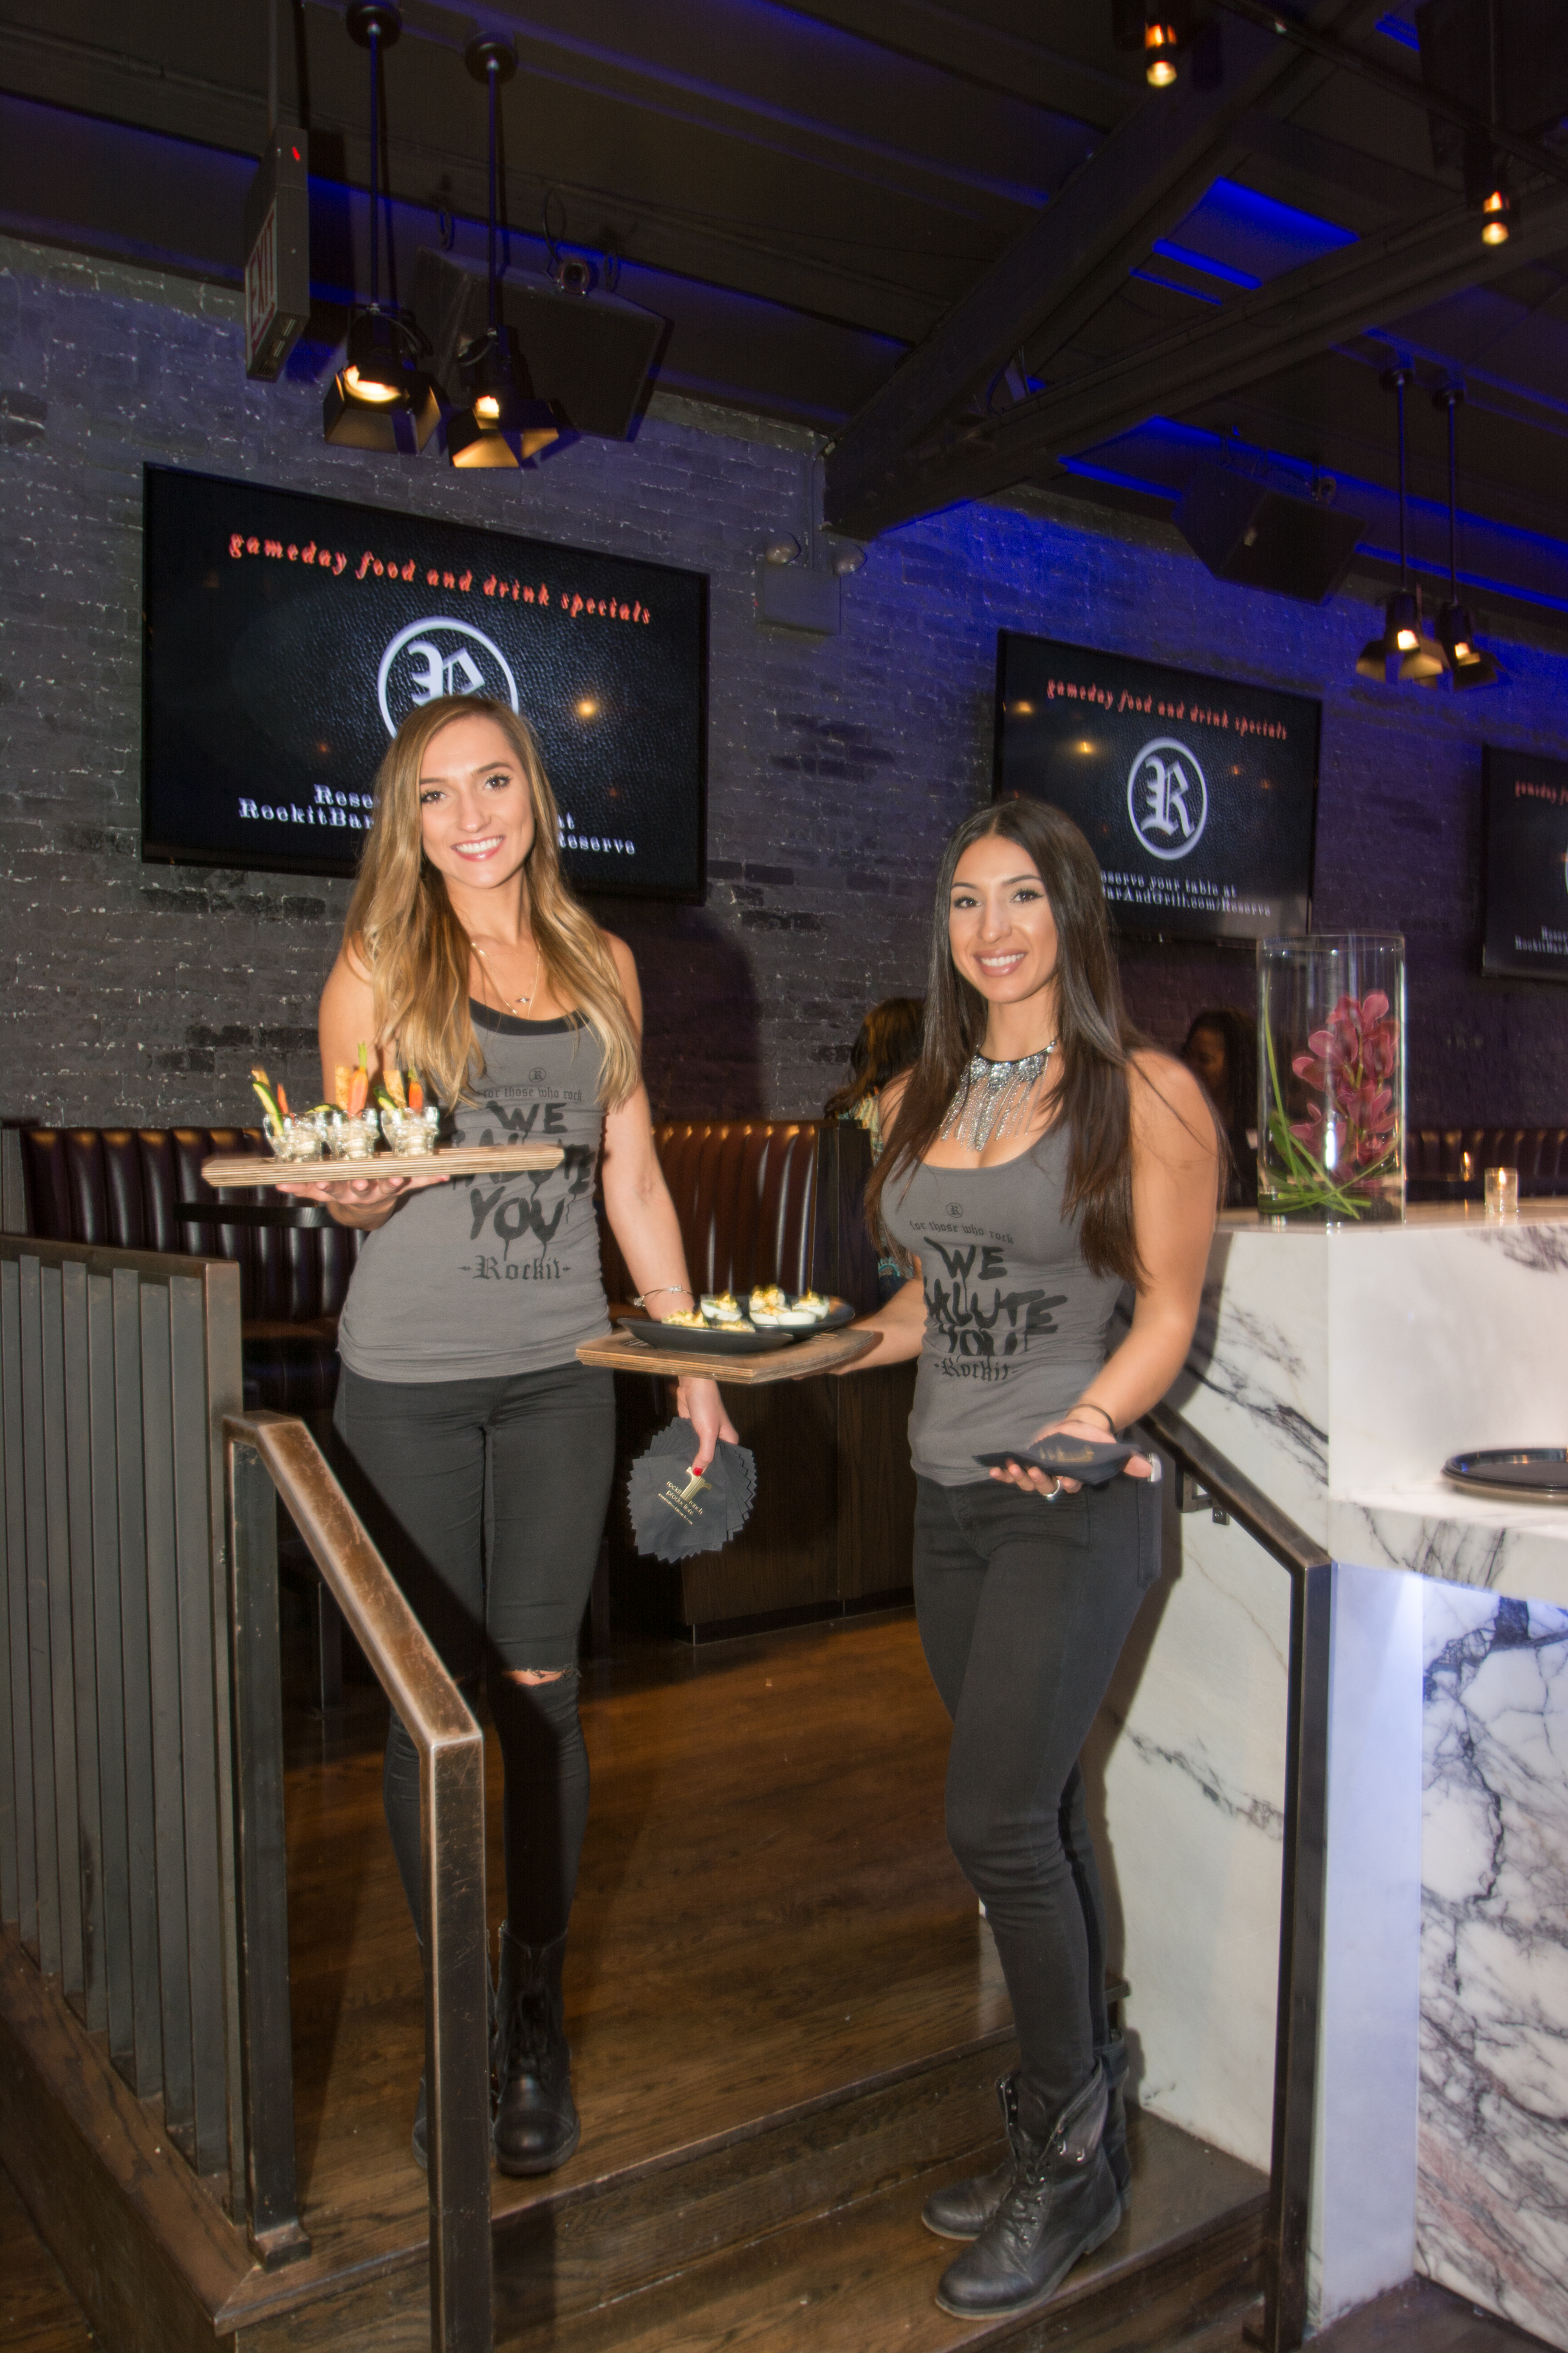 PRIVATE EVENTS - Rockit